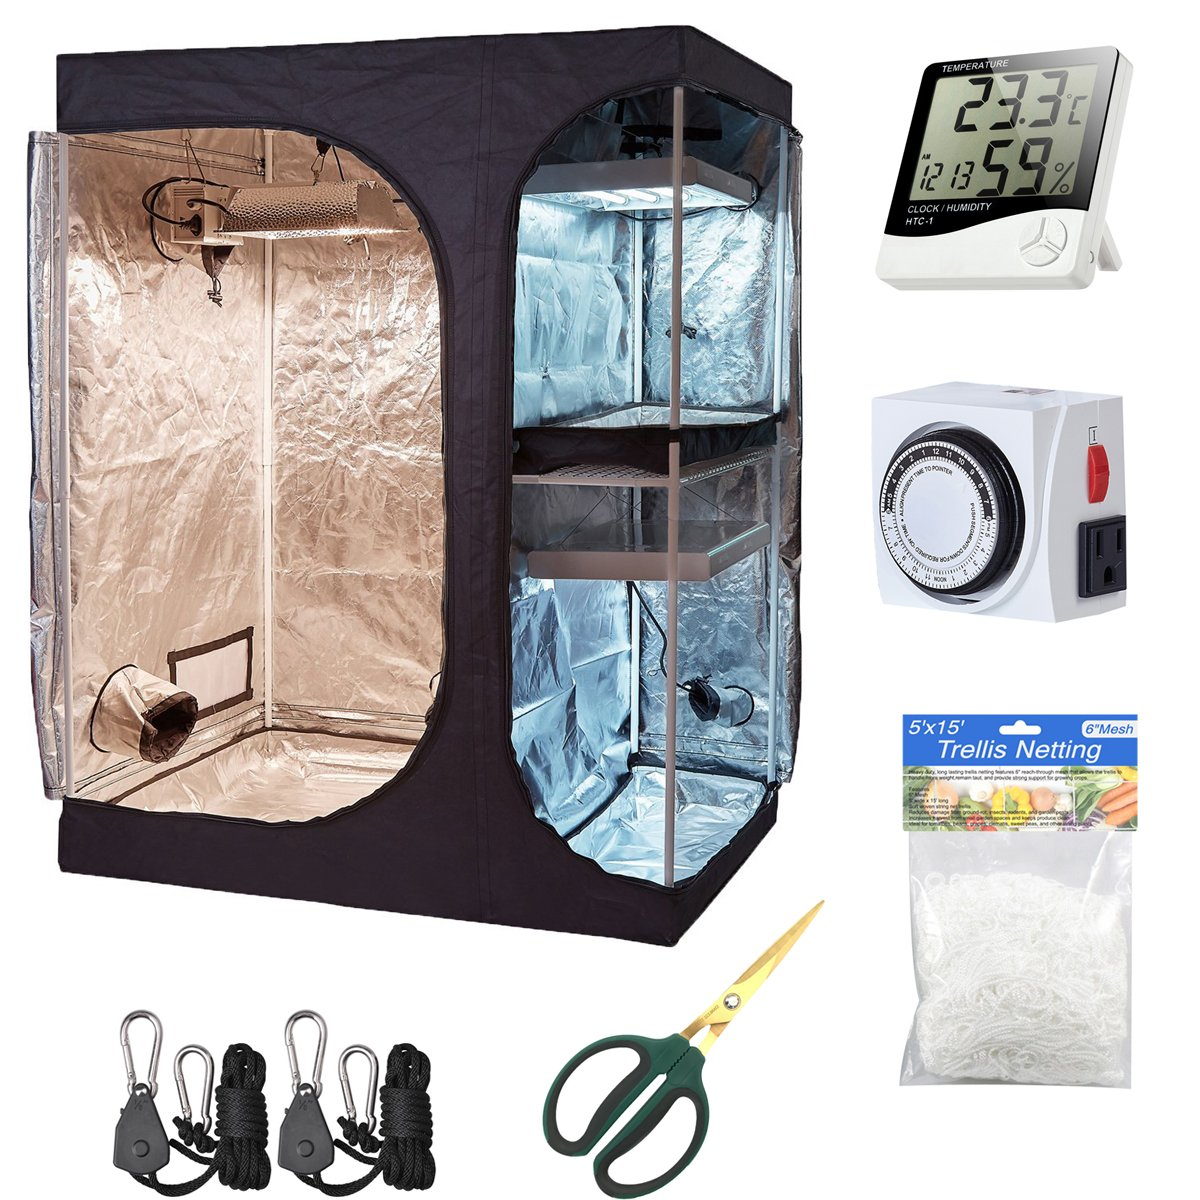 Hydro Plus Grow Tent Kit 60''x48''x80'' 2-in-1 Indoor Plants Growing Dark Room Non Toxic Hut + Hydroponics Growing Setup Accessories (60''x48''x80'' Kit)